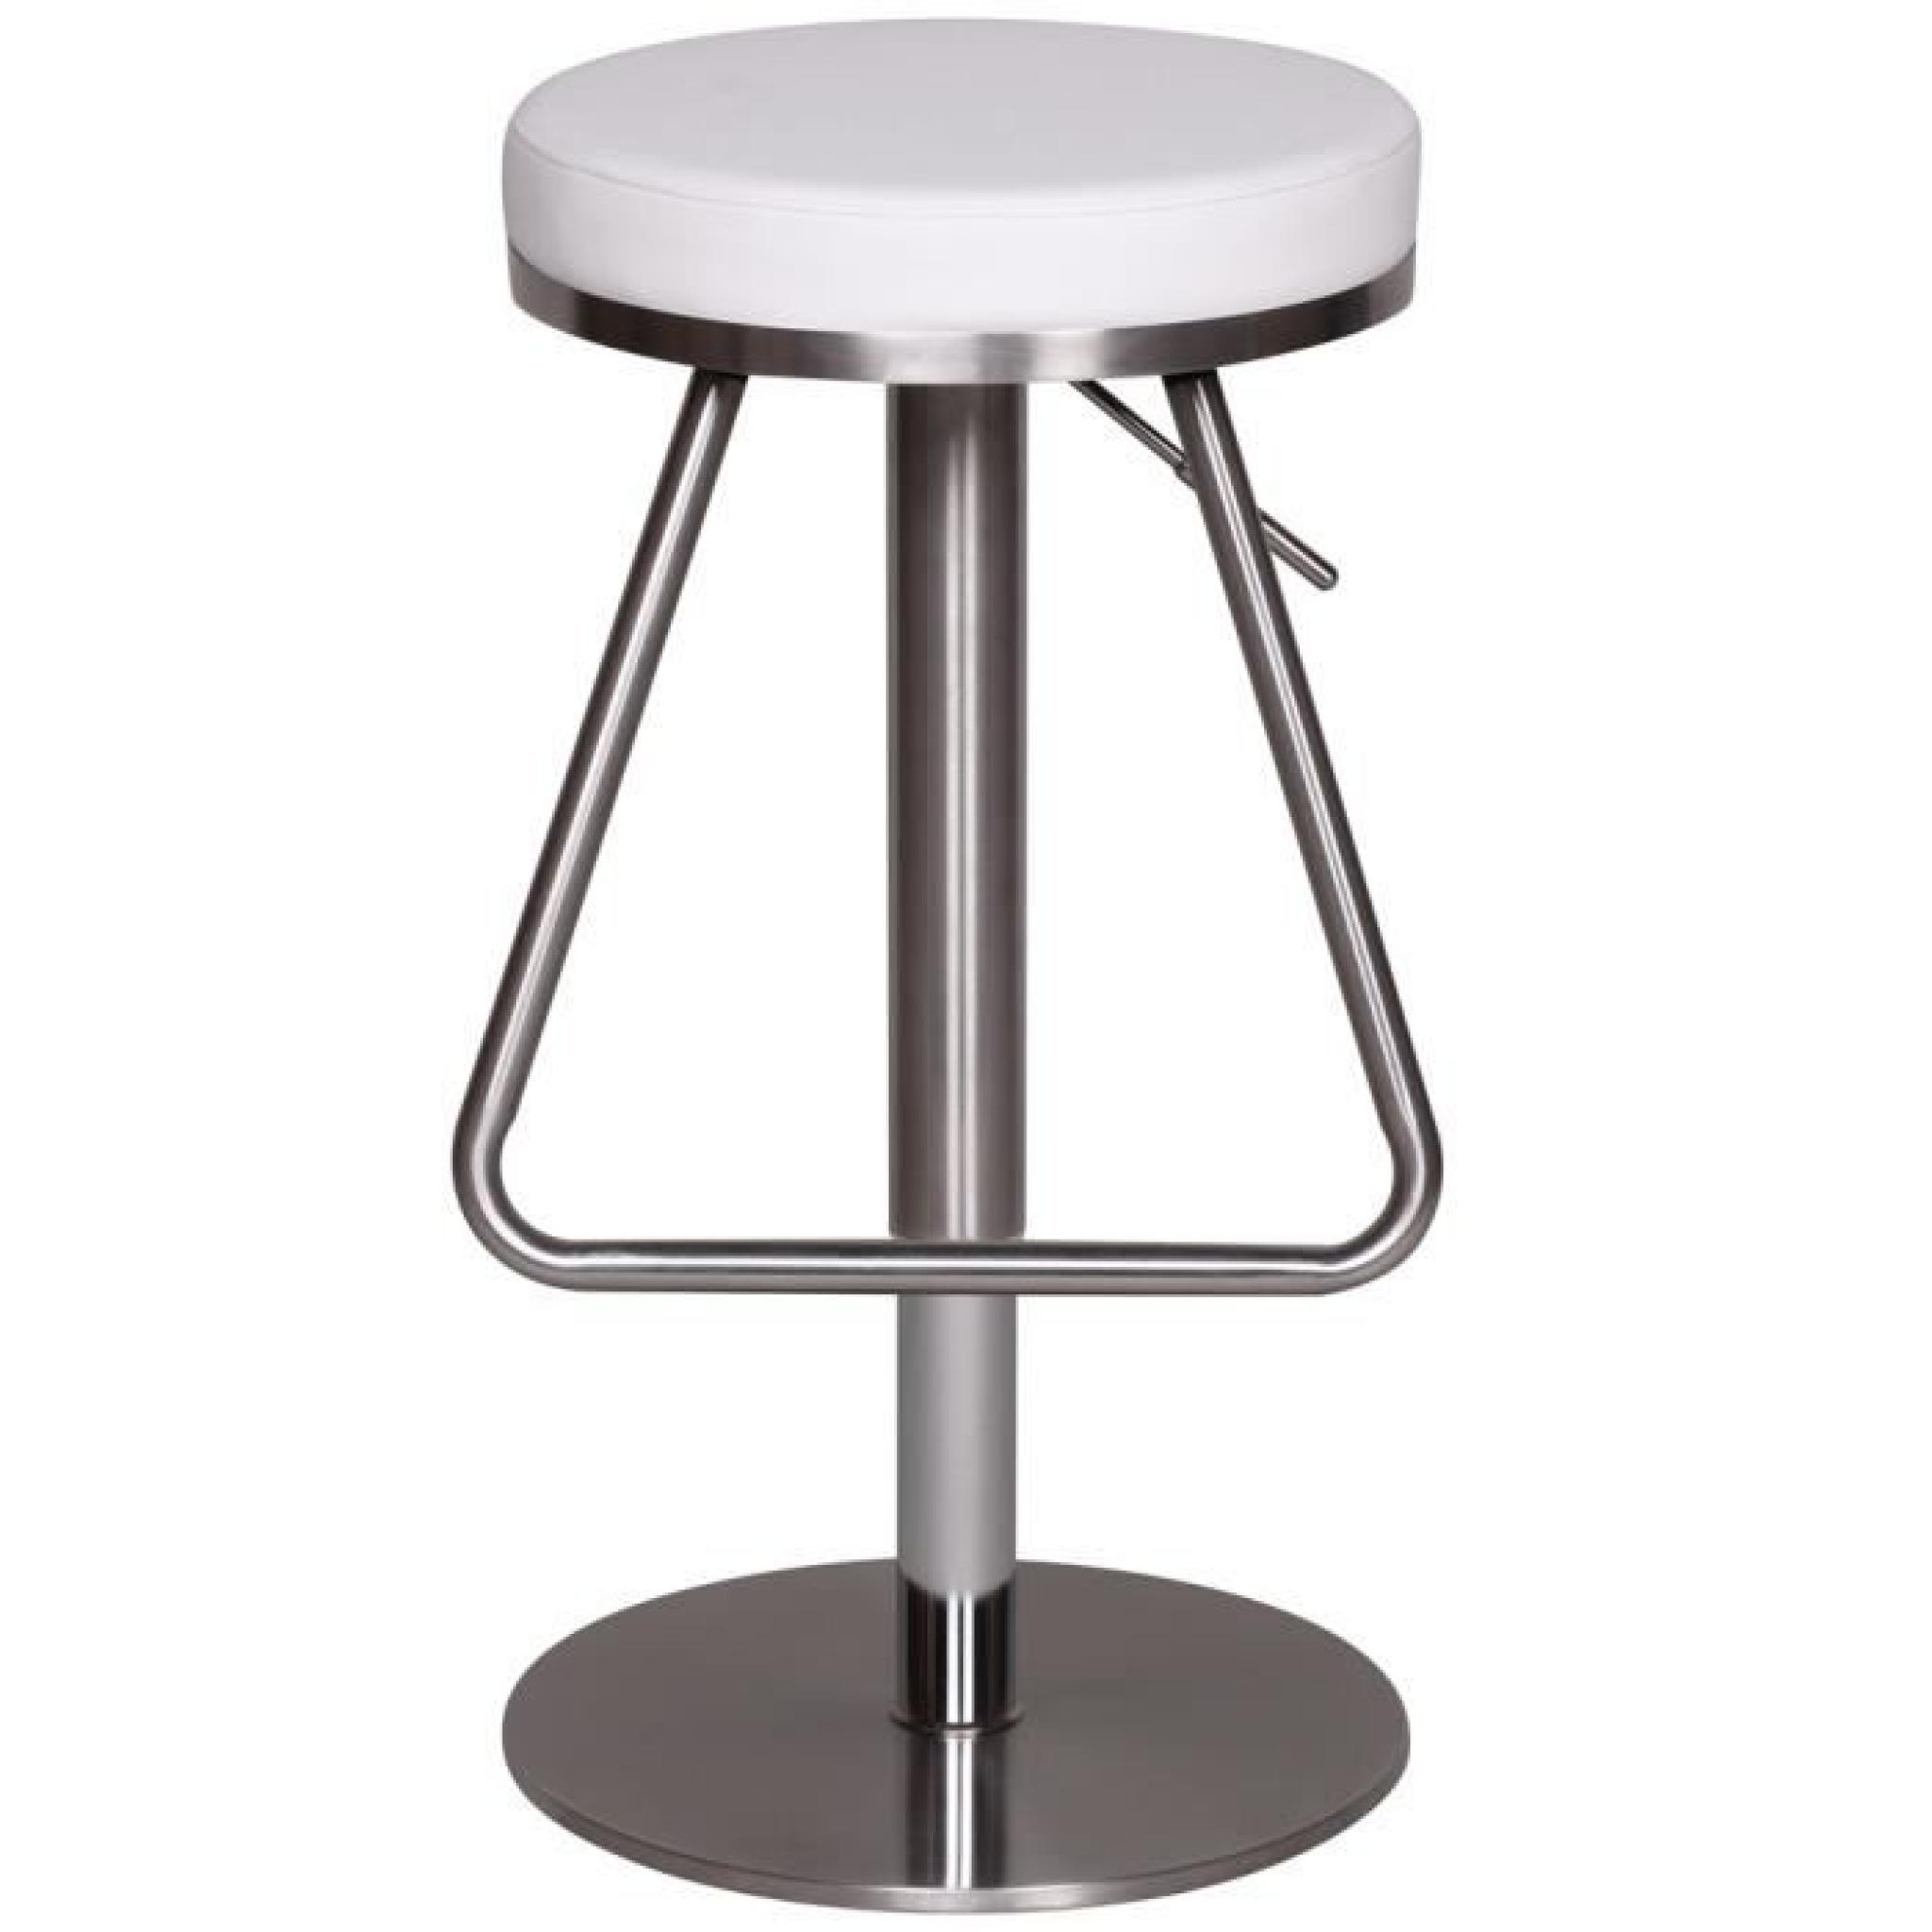 Tabourets Couleur Tabouret De Bar Couleur Tabouret De Bar En M Tal Inspiration